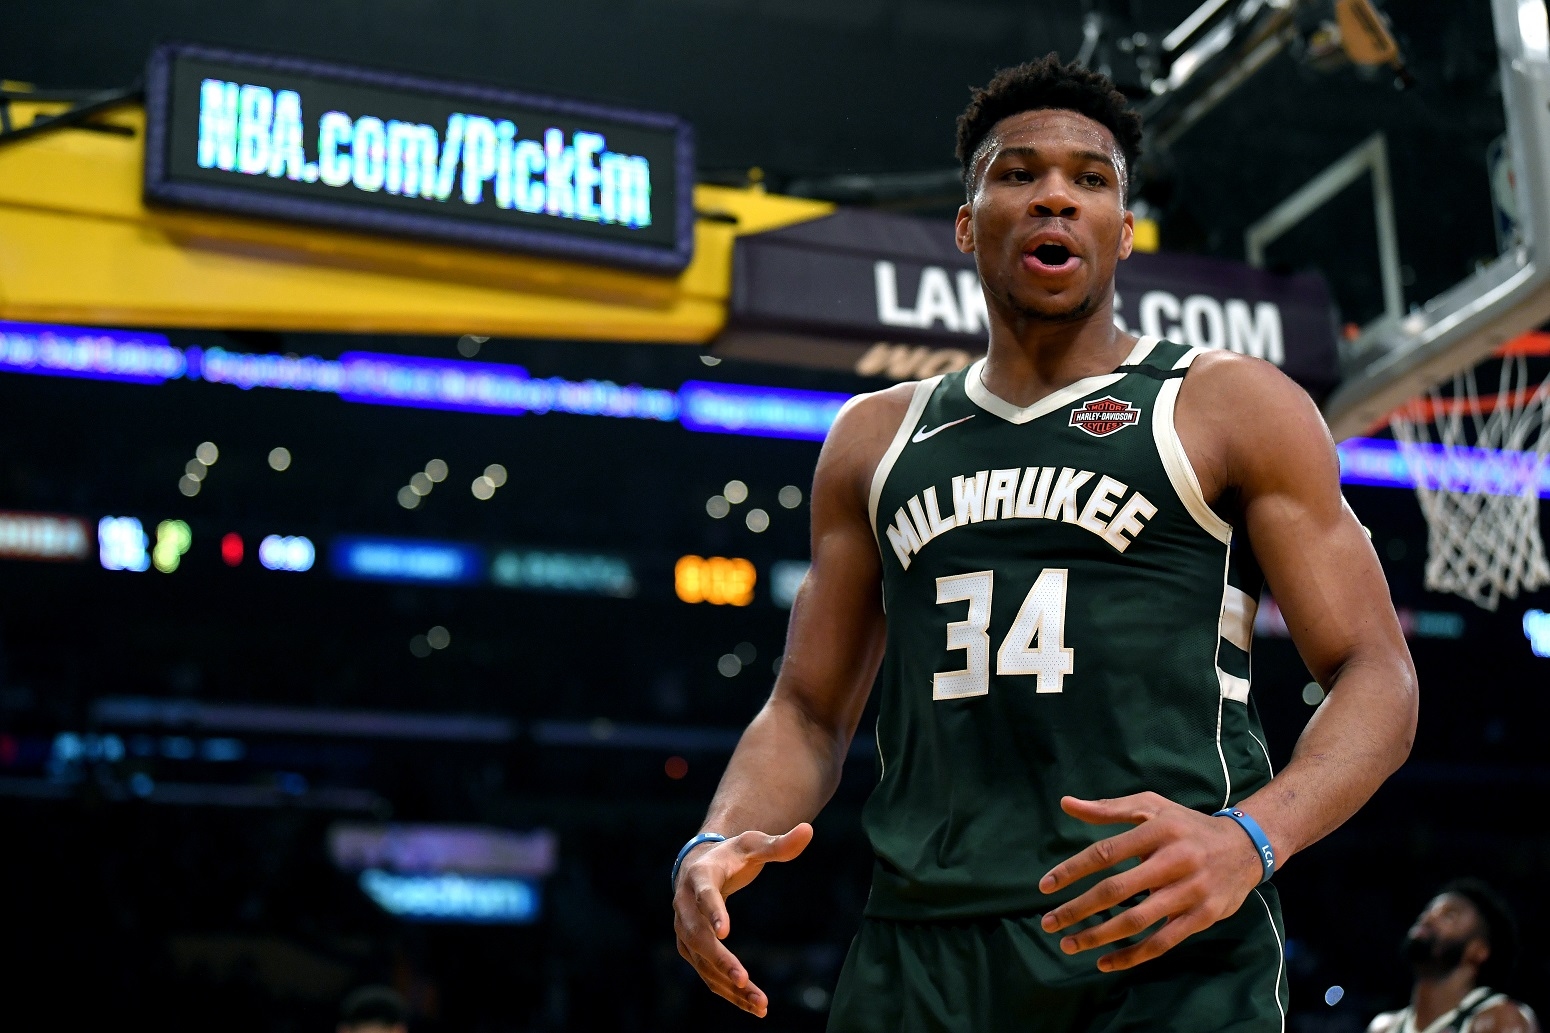 Giannis Antetokounmpo May Have 'Secret Agreement' With the Bucks